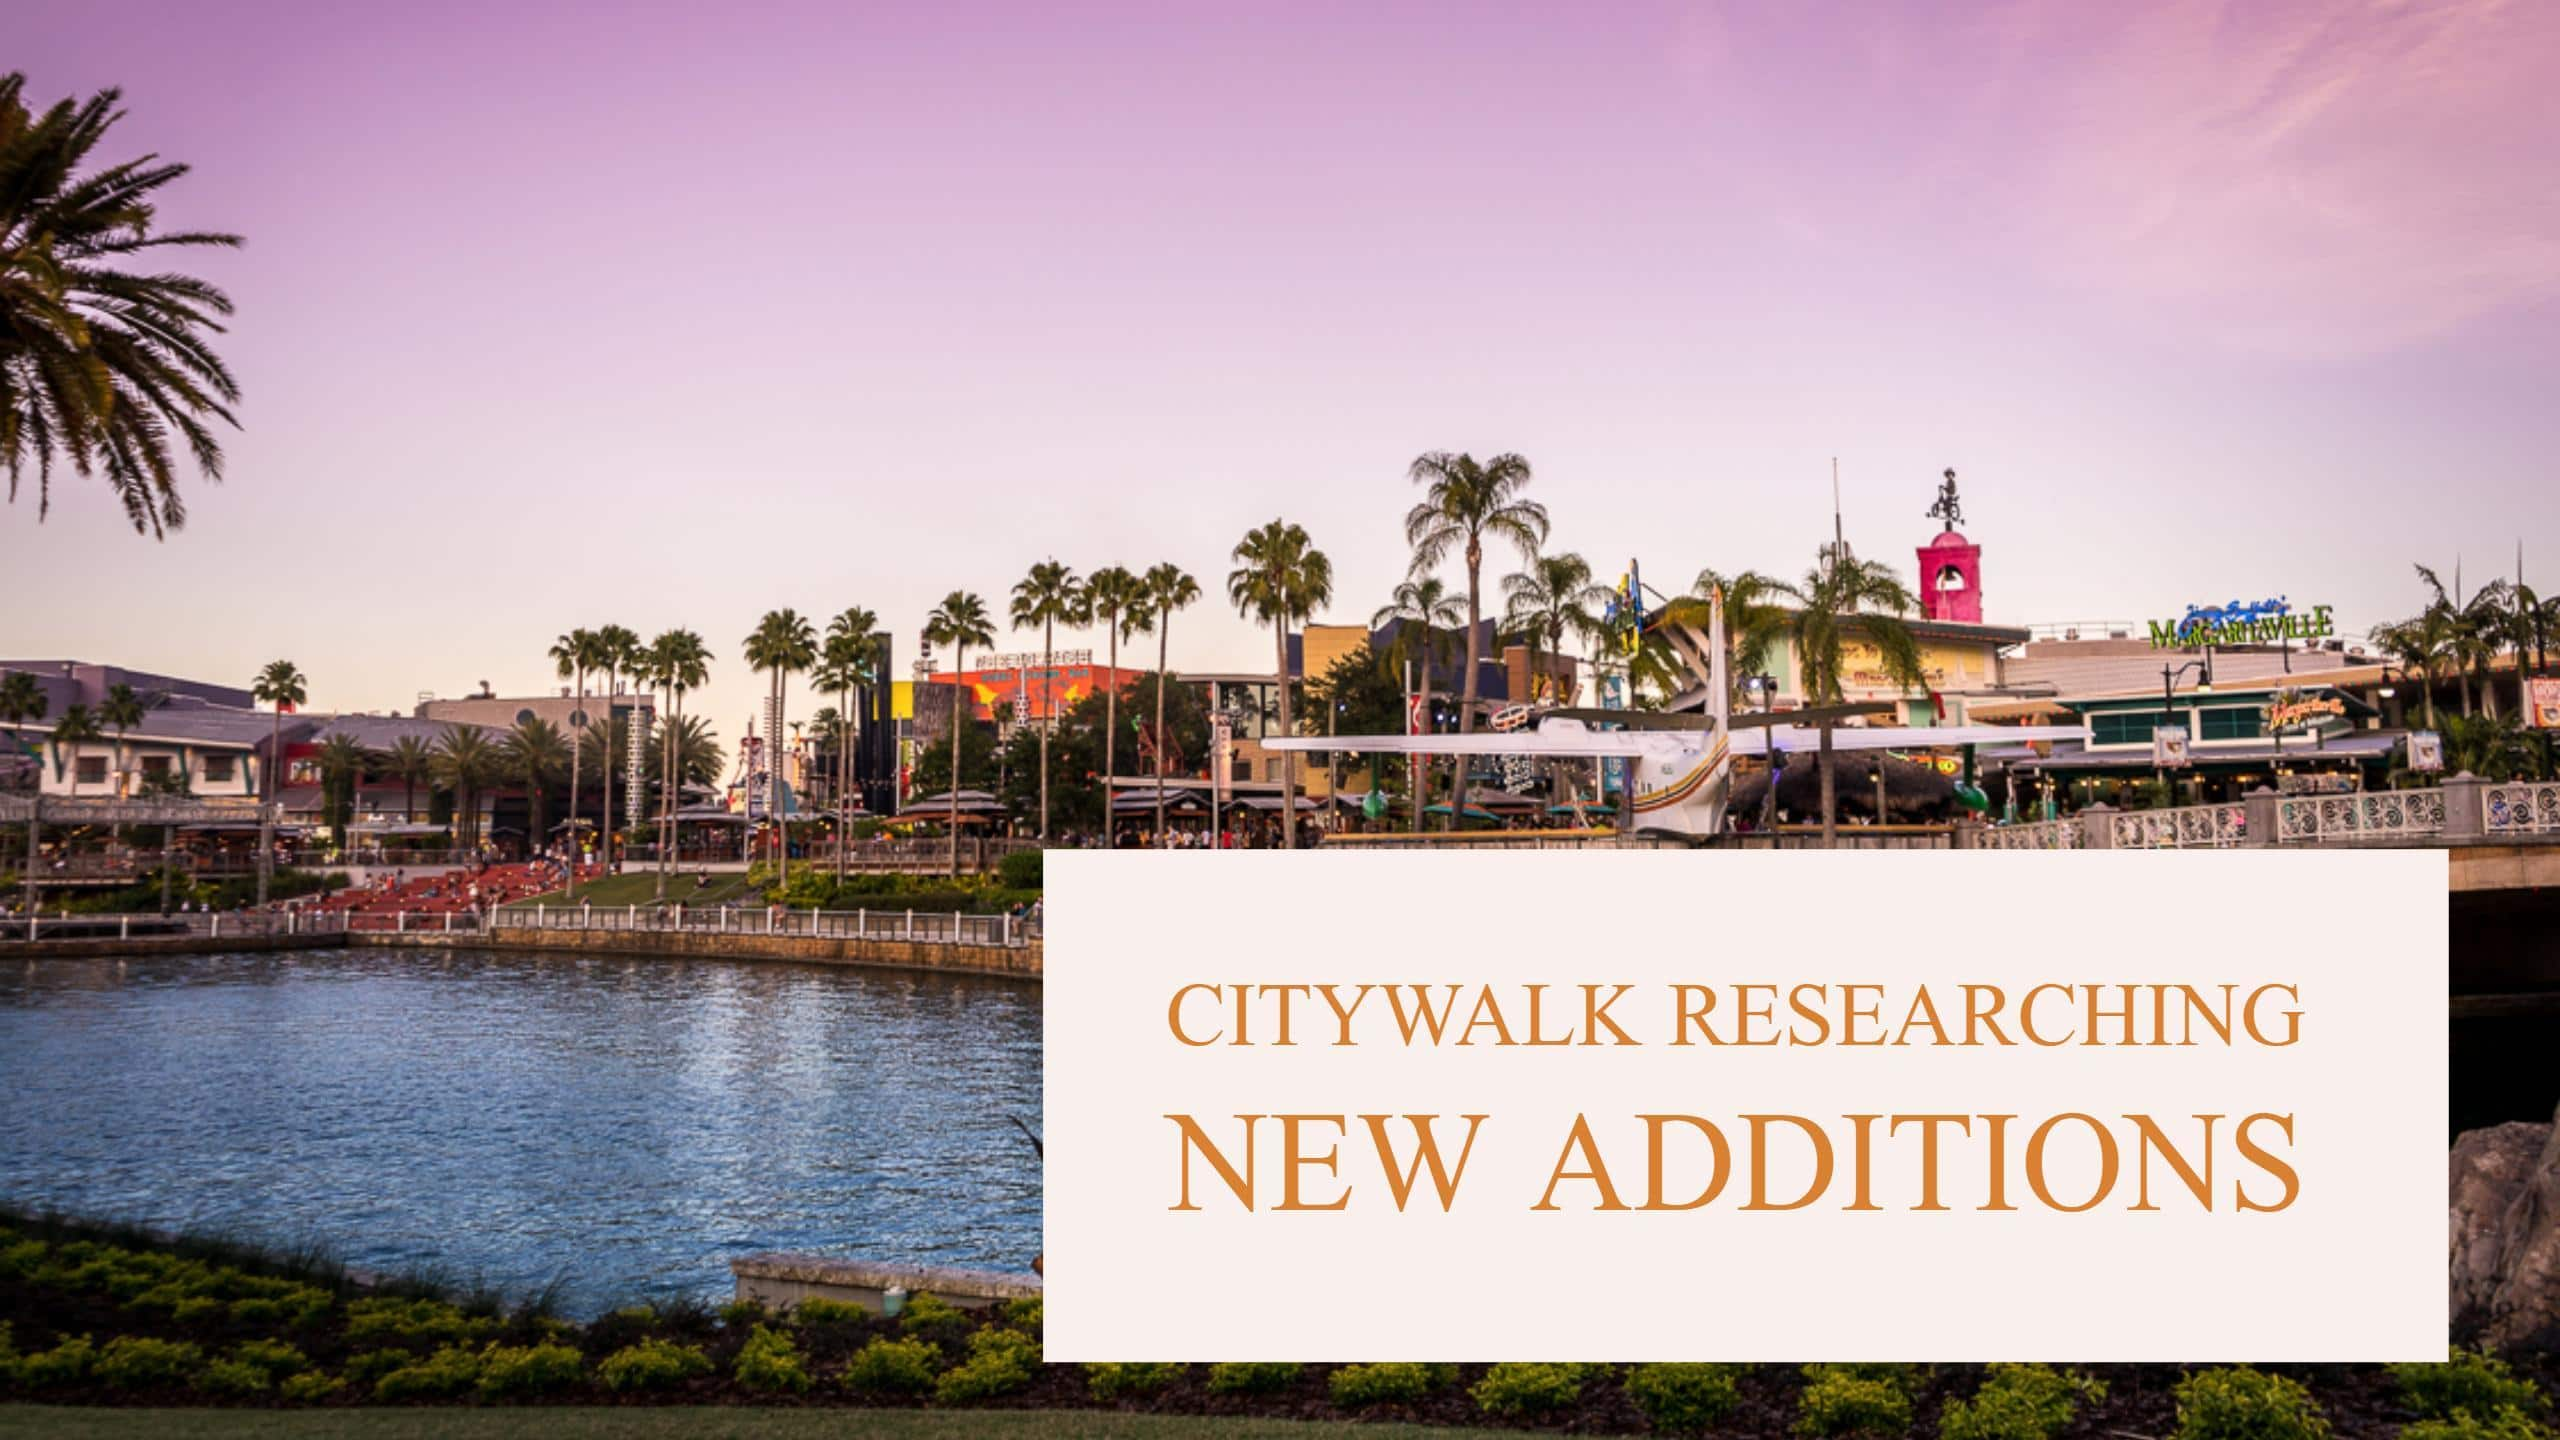 Research suggests changes to Universal Citywalk